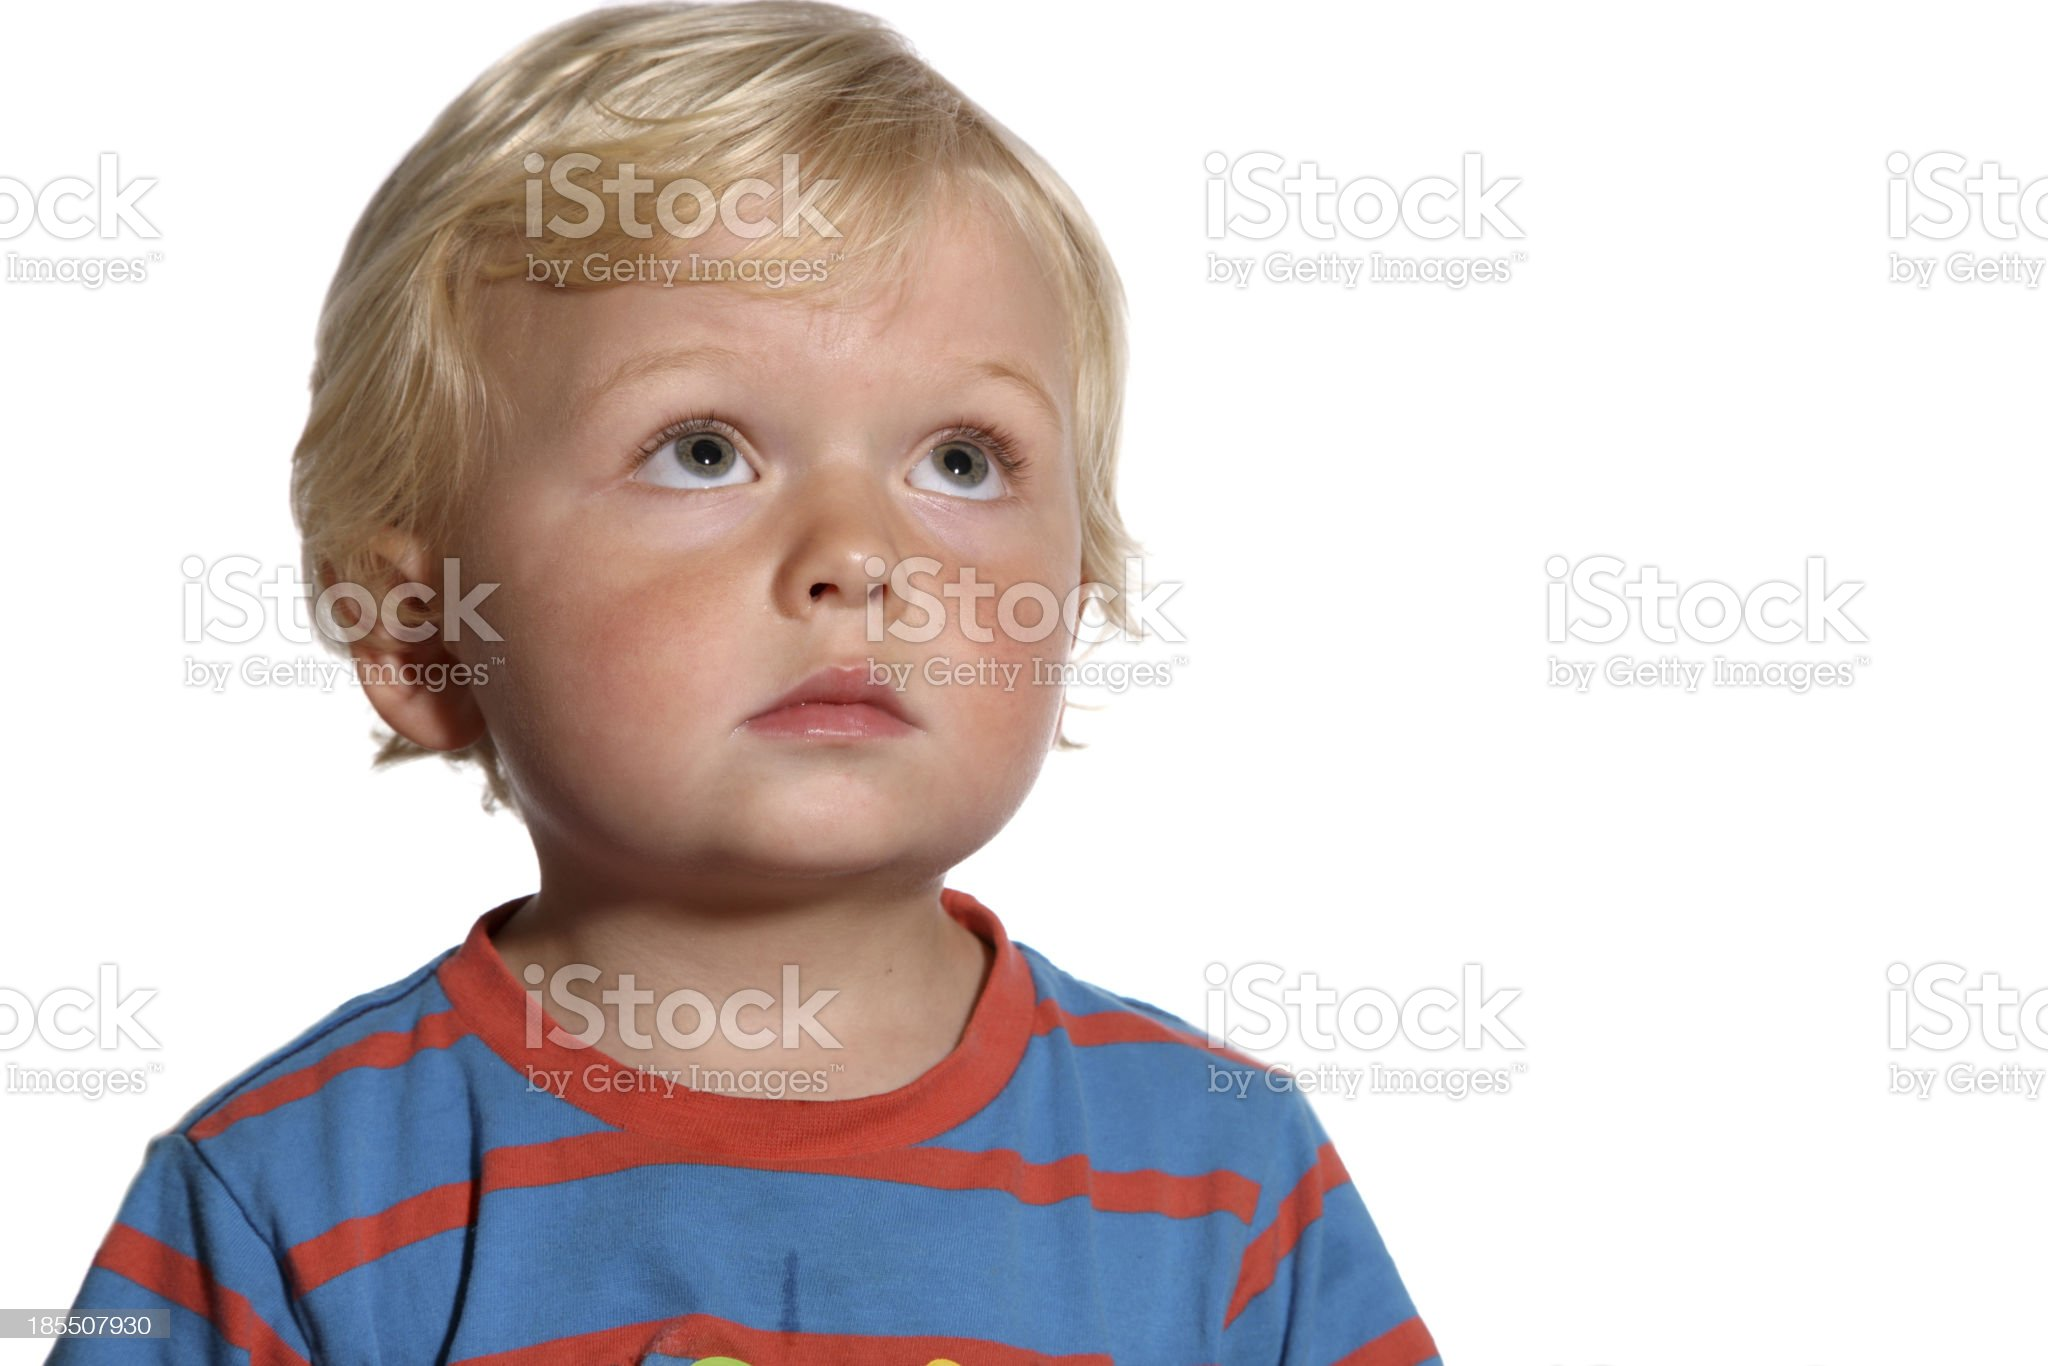 Cute blond two year old royalty-free stock photo